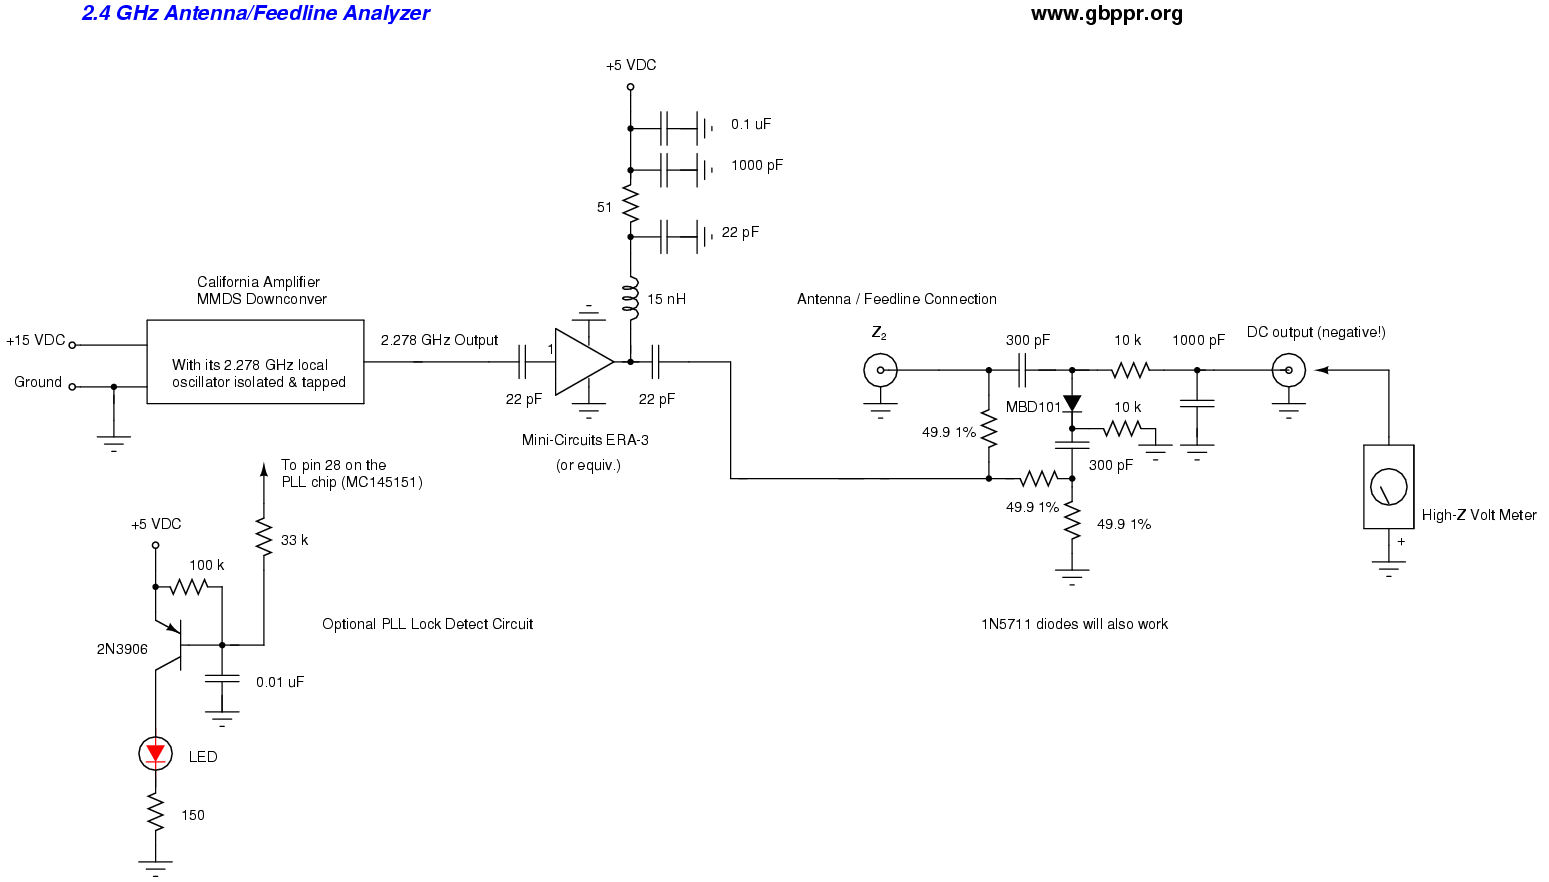 Homebrew Rf Test Equipment And Software 5hz 5mhz Function Generator Circuit Is Shown In The Chart 24 Ghz Antenna Feedline Analyzer Schematic